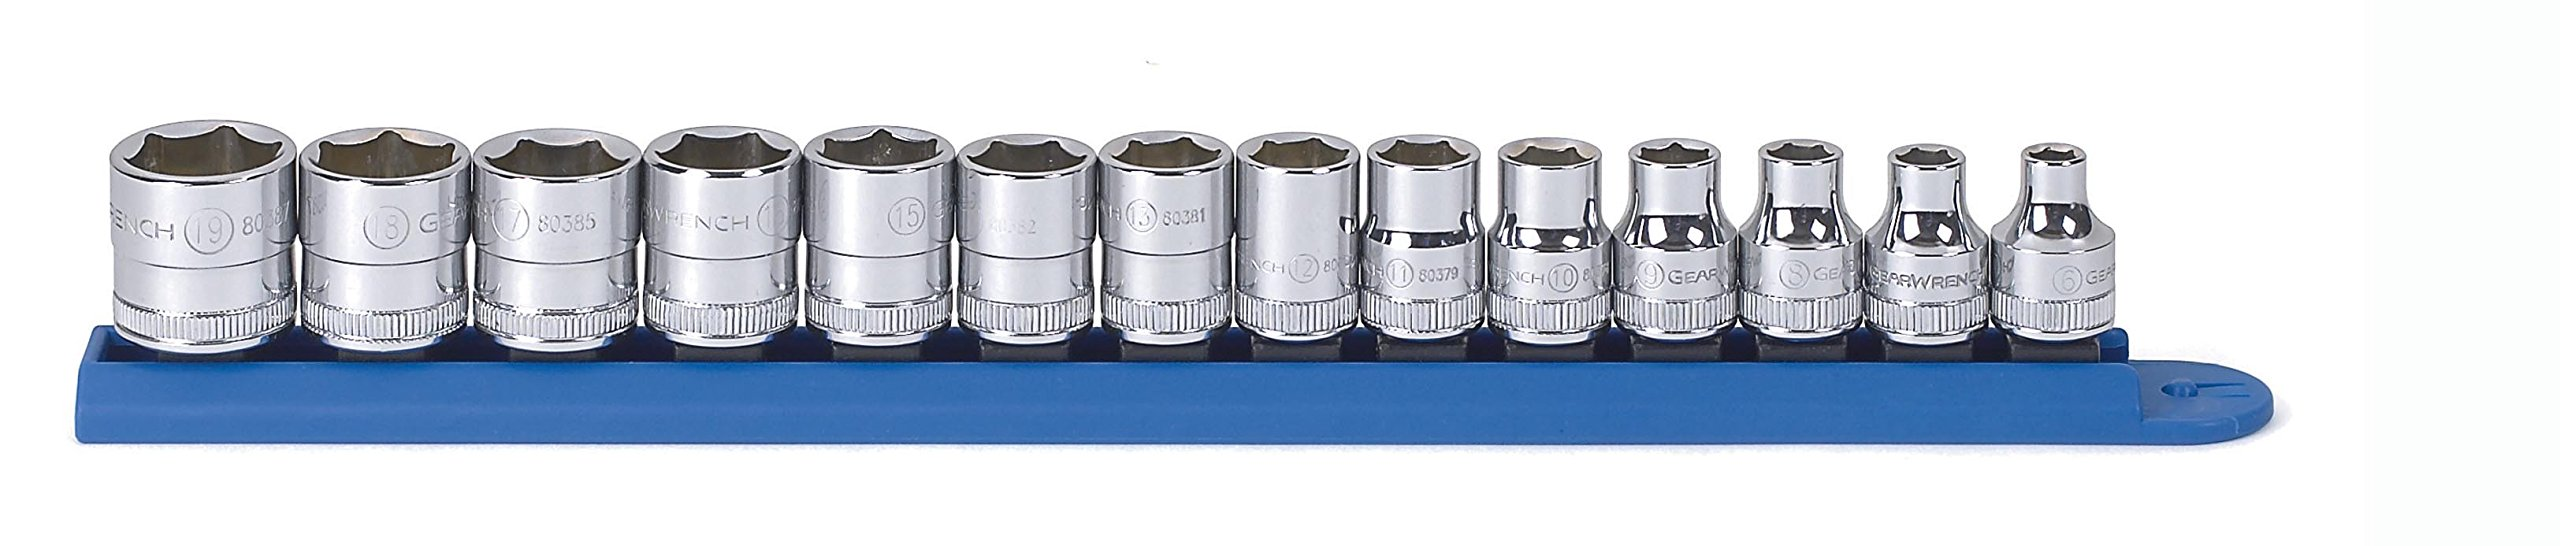 GearWrench 80552 14 Pc. 3/8'' Drive 6 Point Metric Standard Socket Set by GearWrench